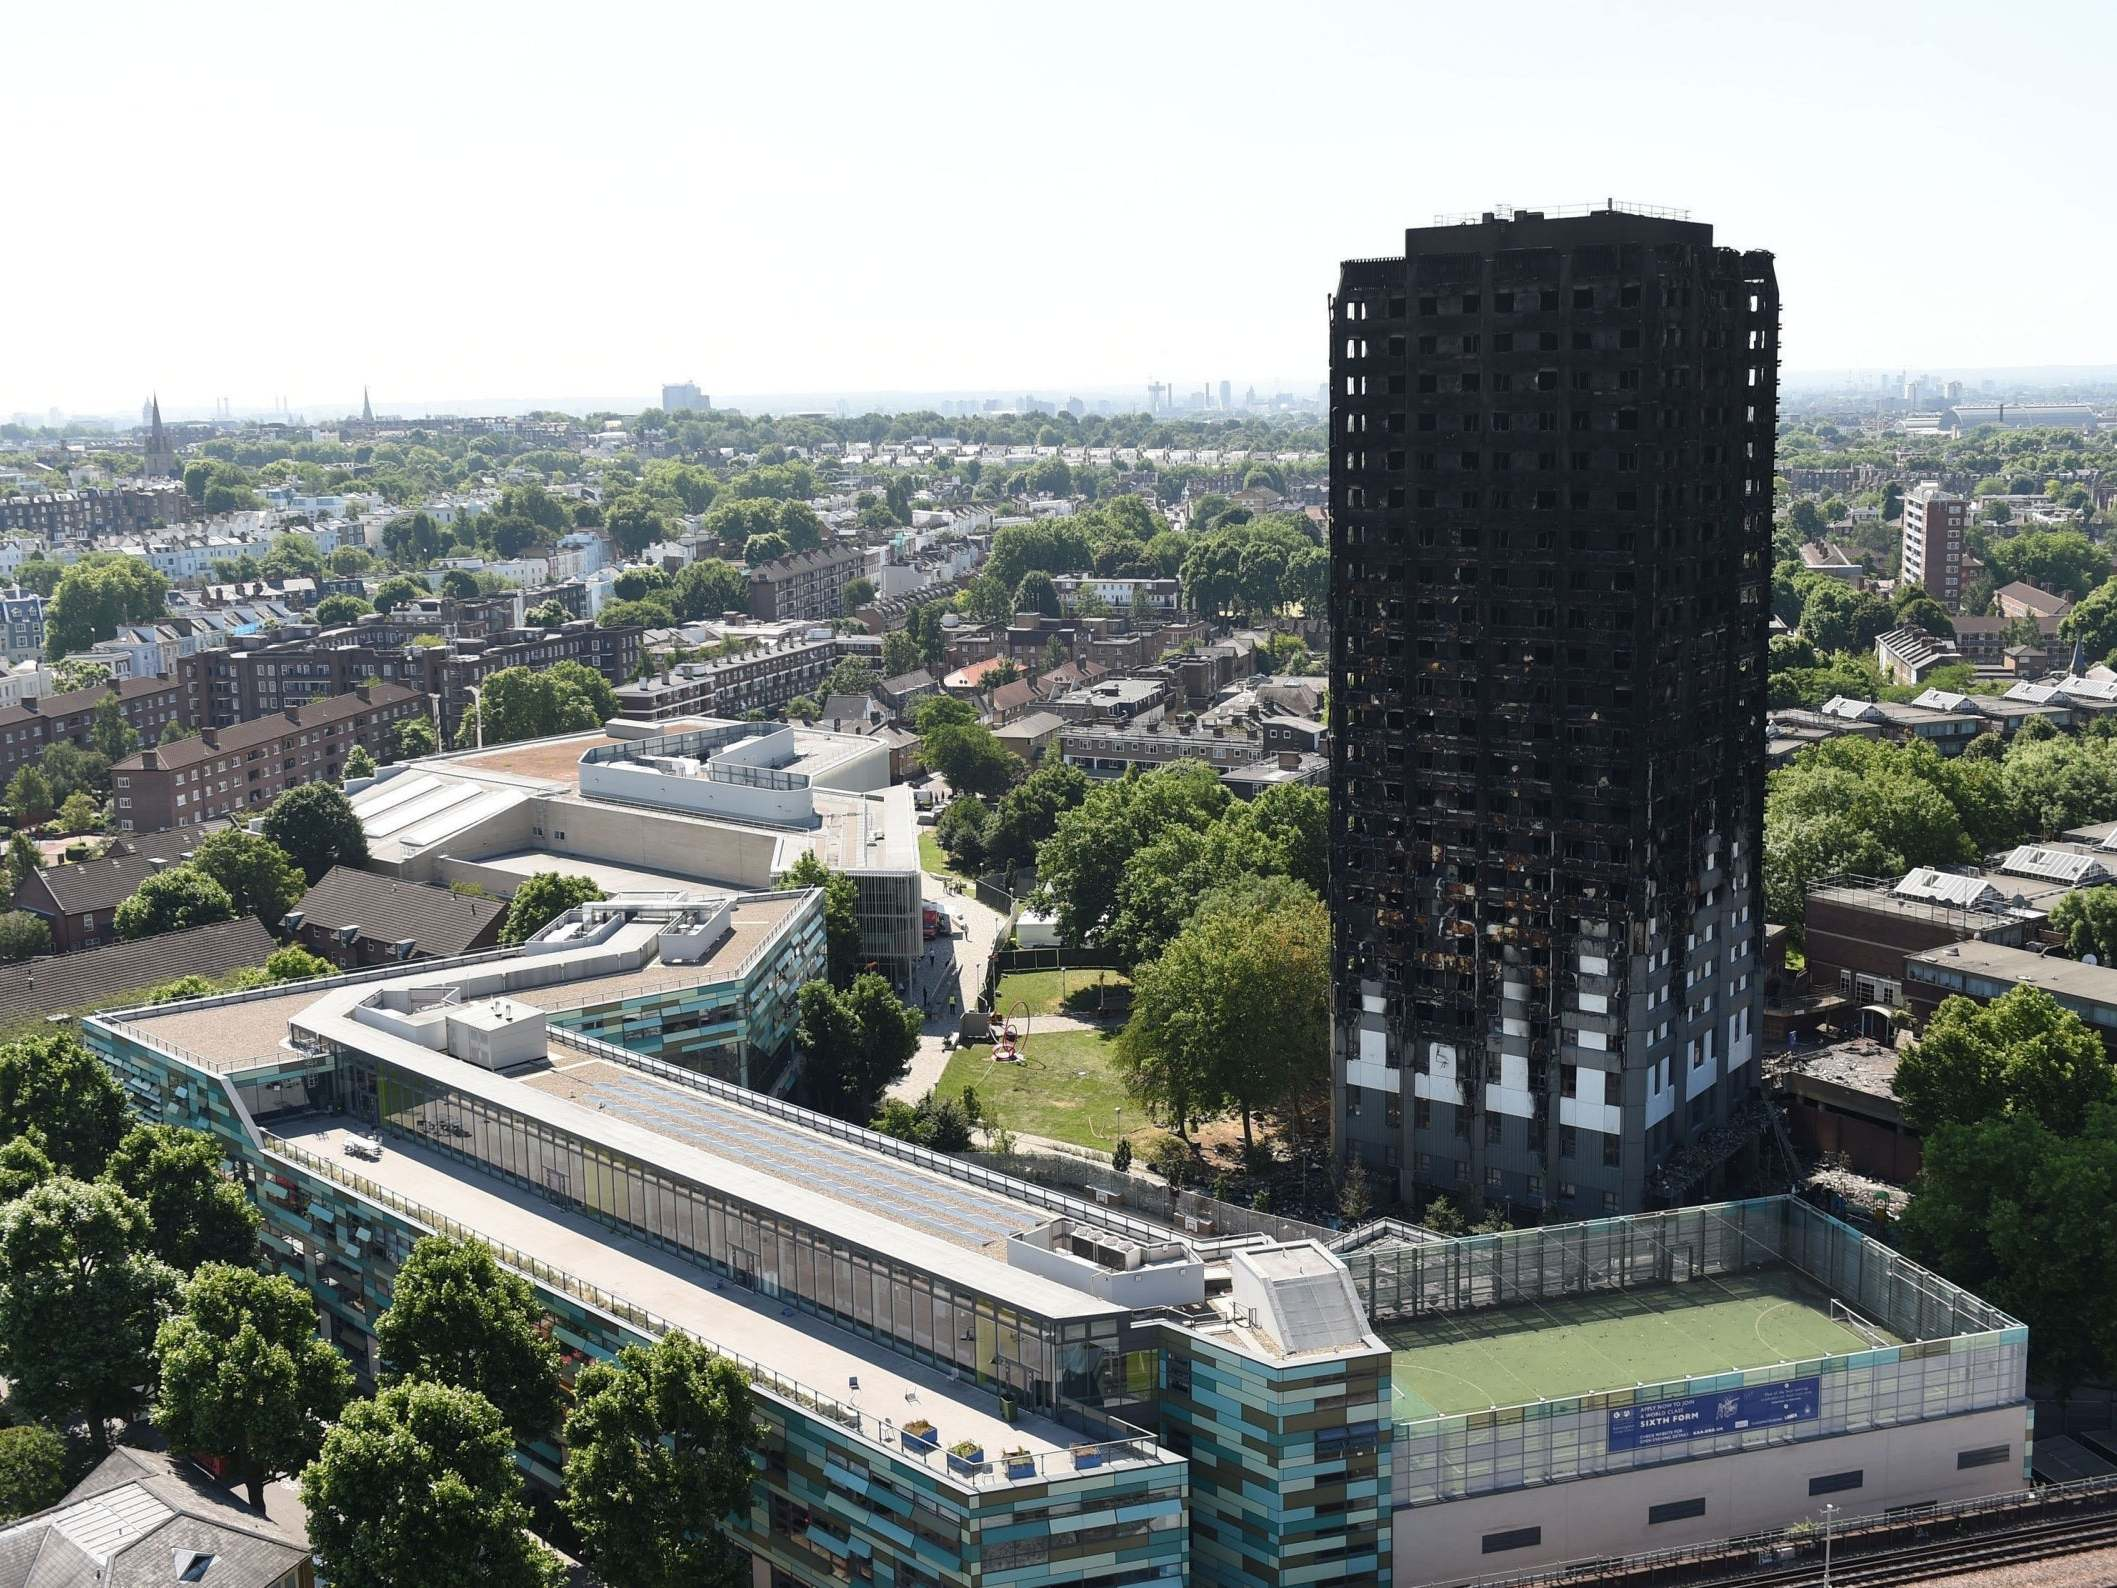 I lost family in the Grenfell fire and the thought of a new Tory government makes me shudder